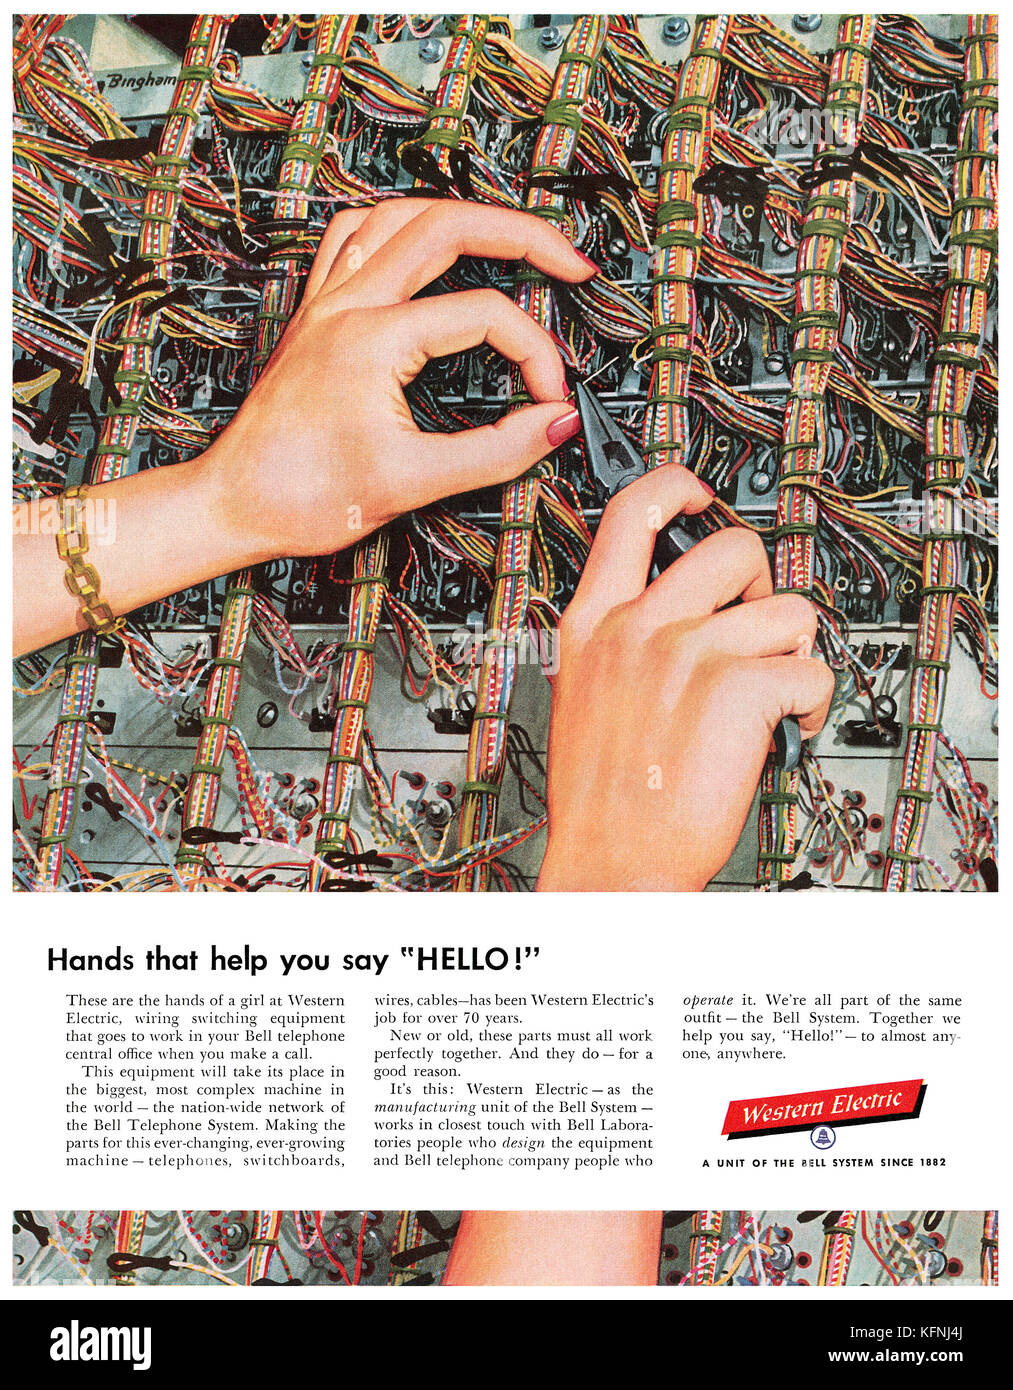 1954 U.S. advertisement for Bell telephone's Western Electric division. - Stock Image